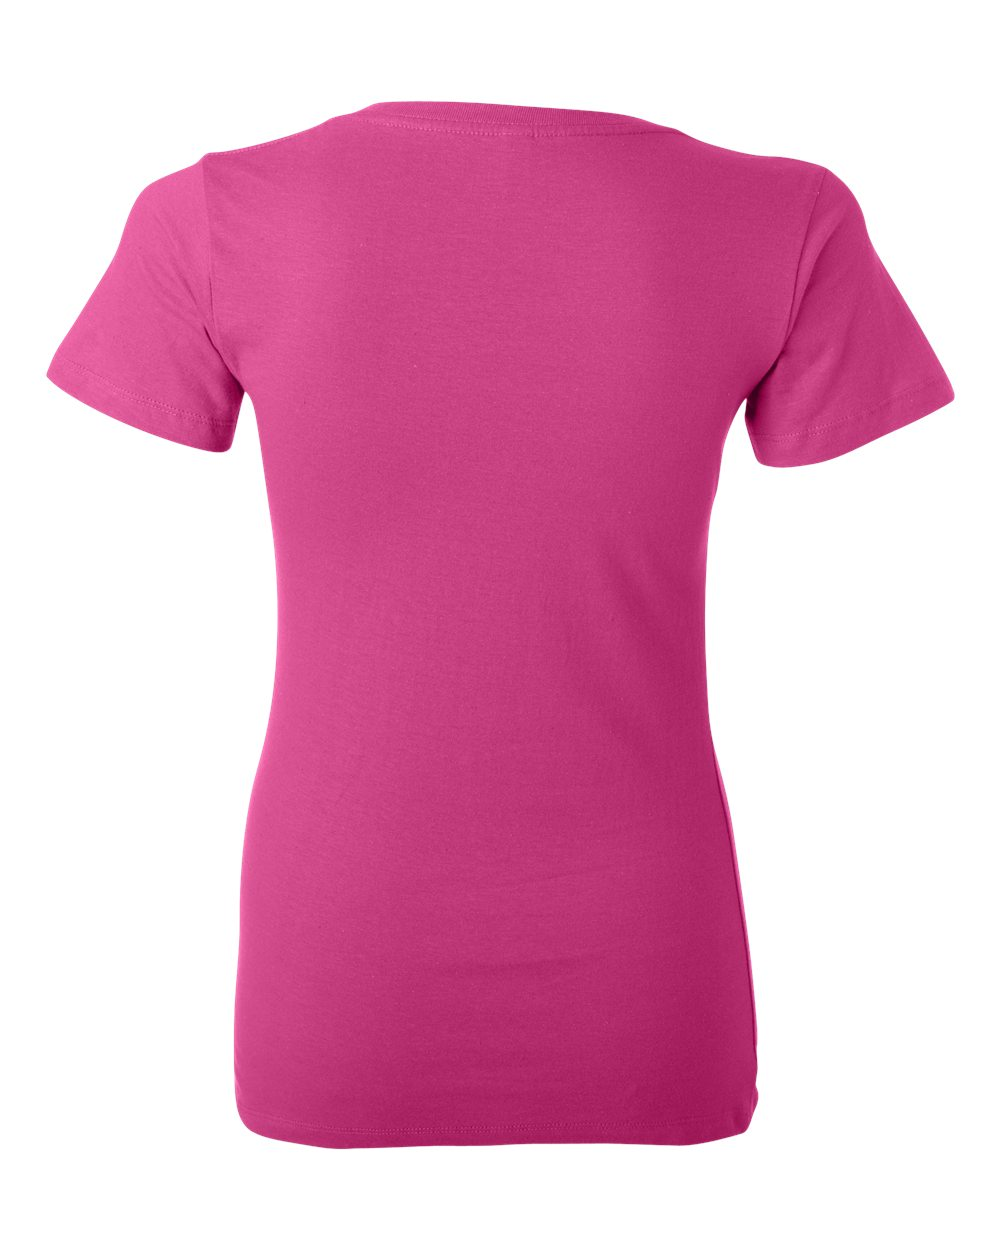 Bella-Canvas-Women-039-s-Jersey-Short-Sleeve-Deep-V-Neck-T-Shirt-B6035-S-2XL thumbnail 58